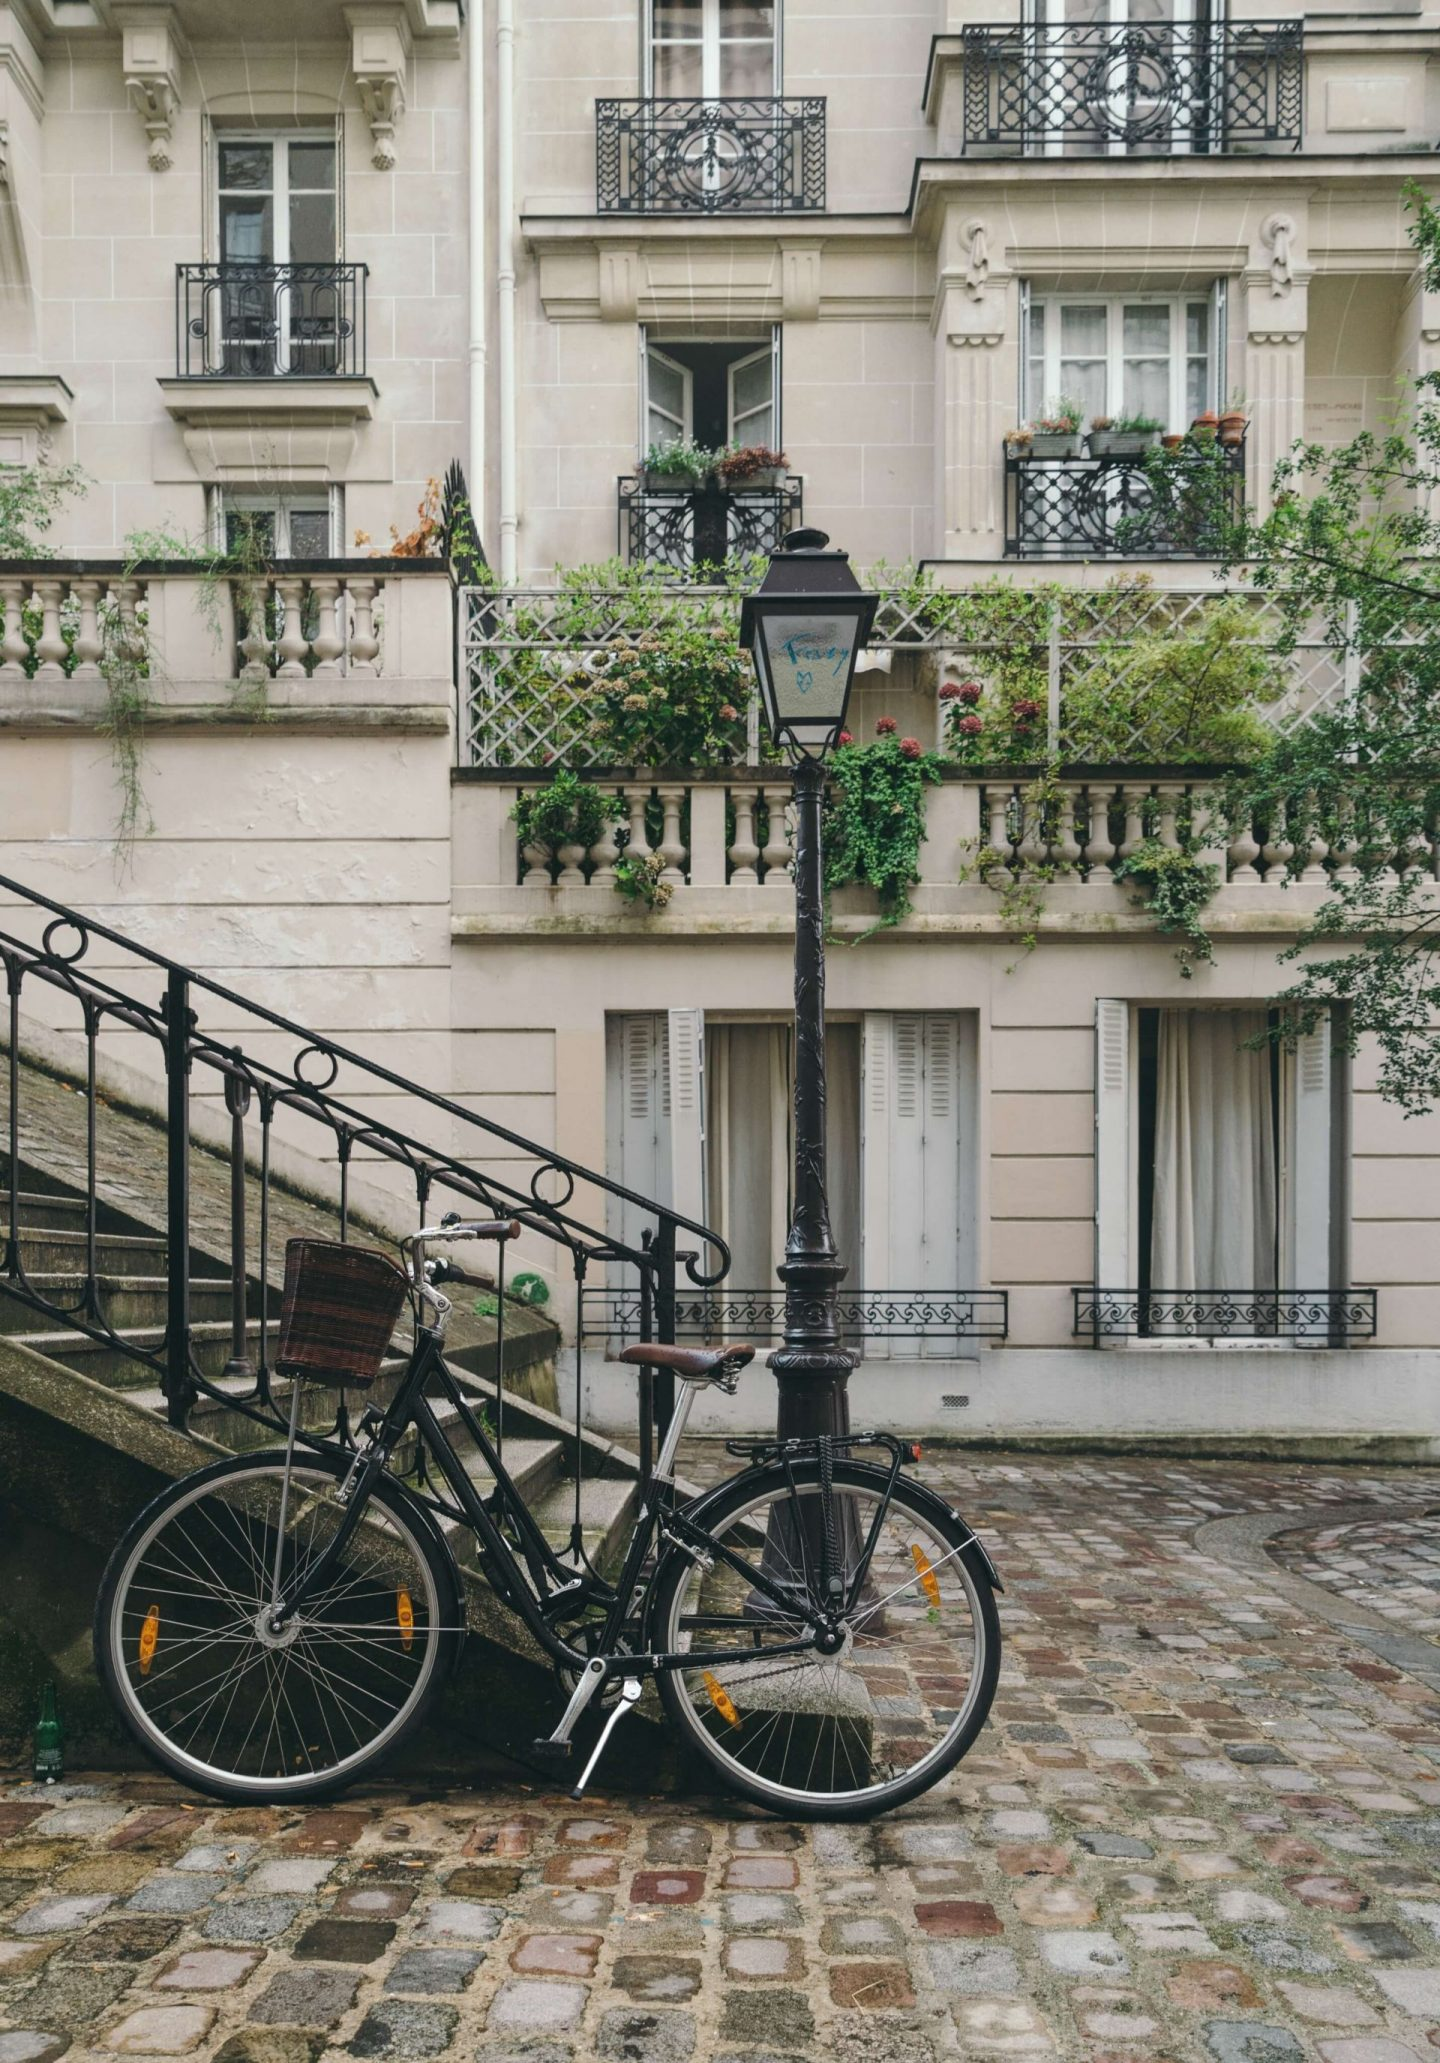 things to do in paris, bucket list experiences, authentic things to do, street in paris, city in france, bike